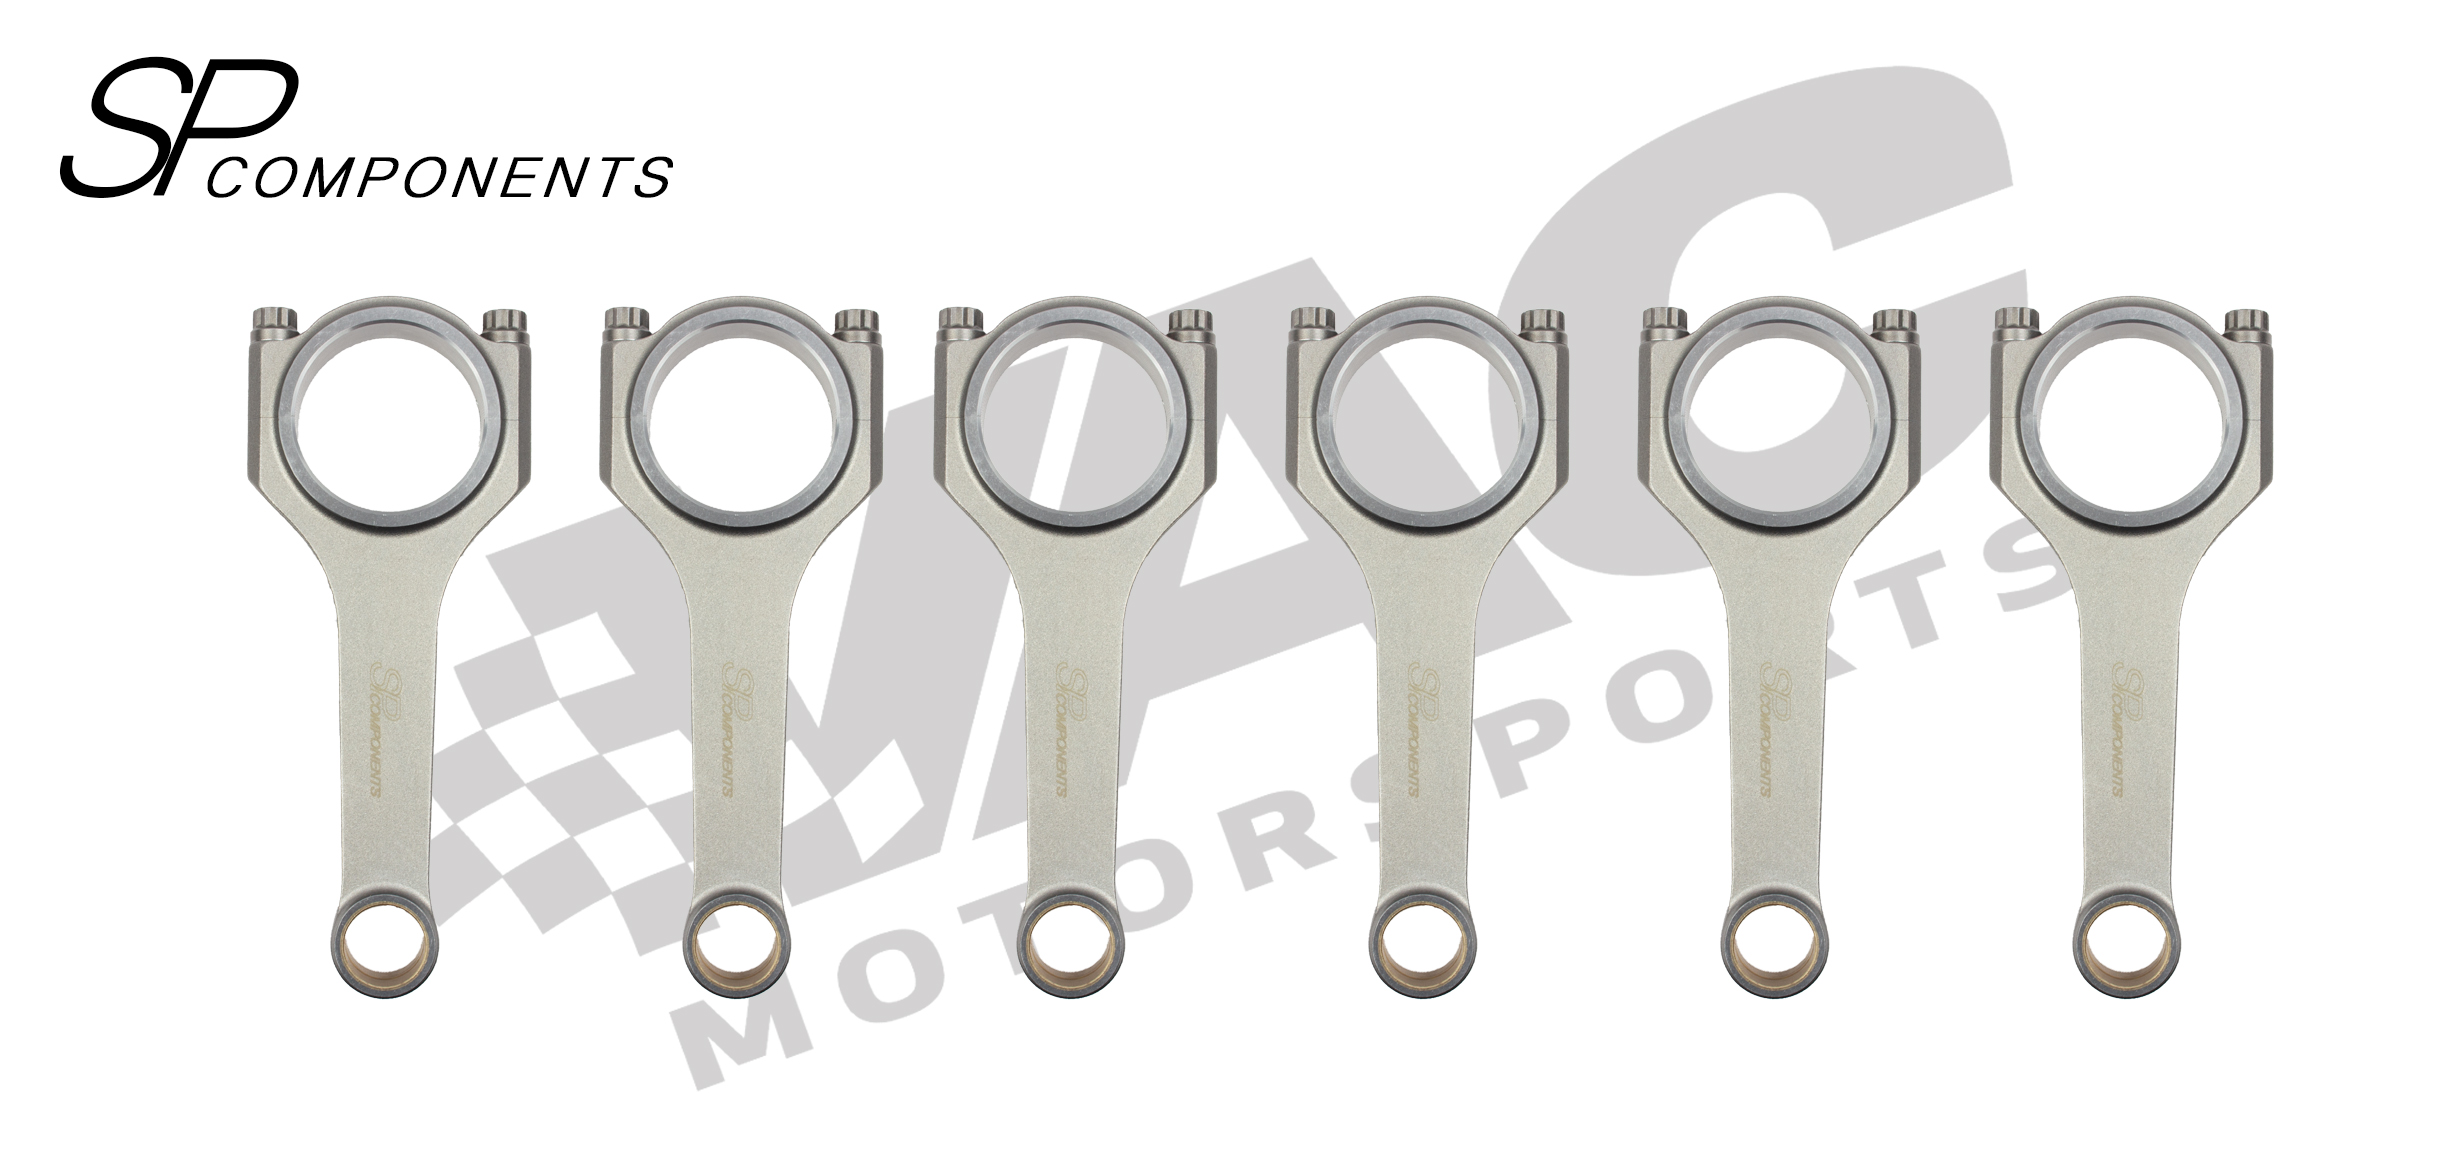 SP Components Forged Connecting Rod Set (BMW M52/S50us/S52us) MAIN